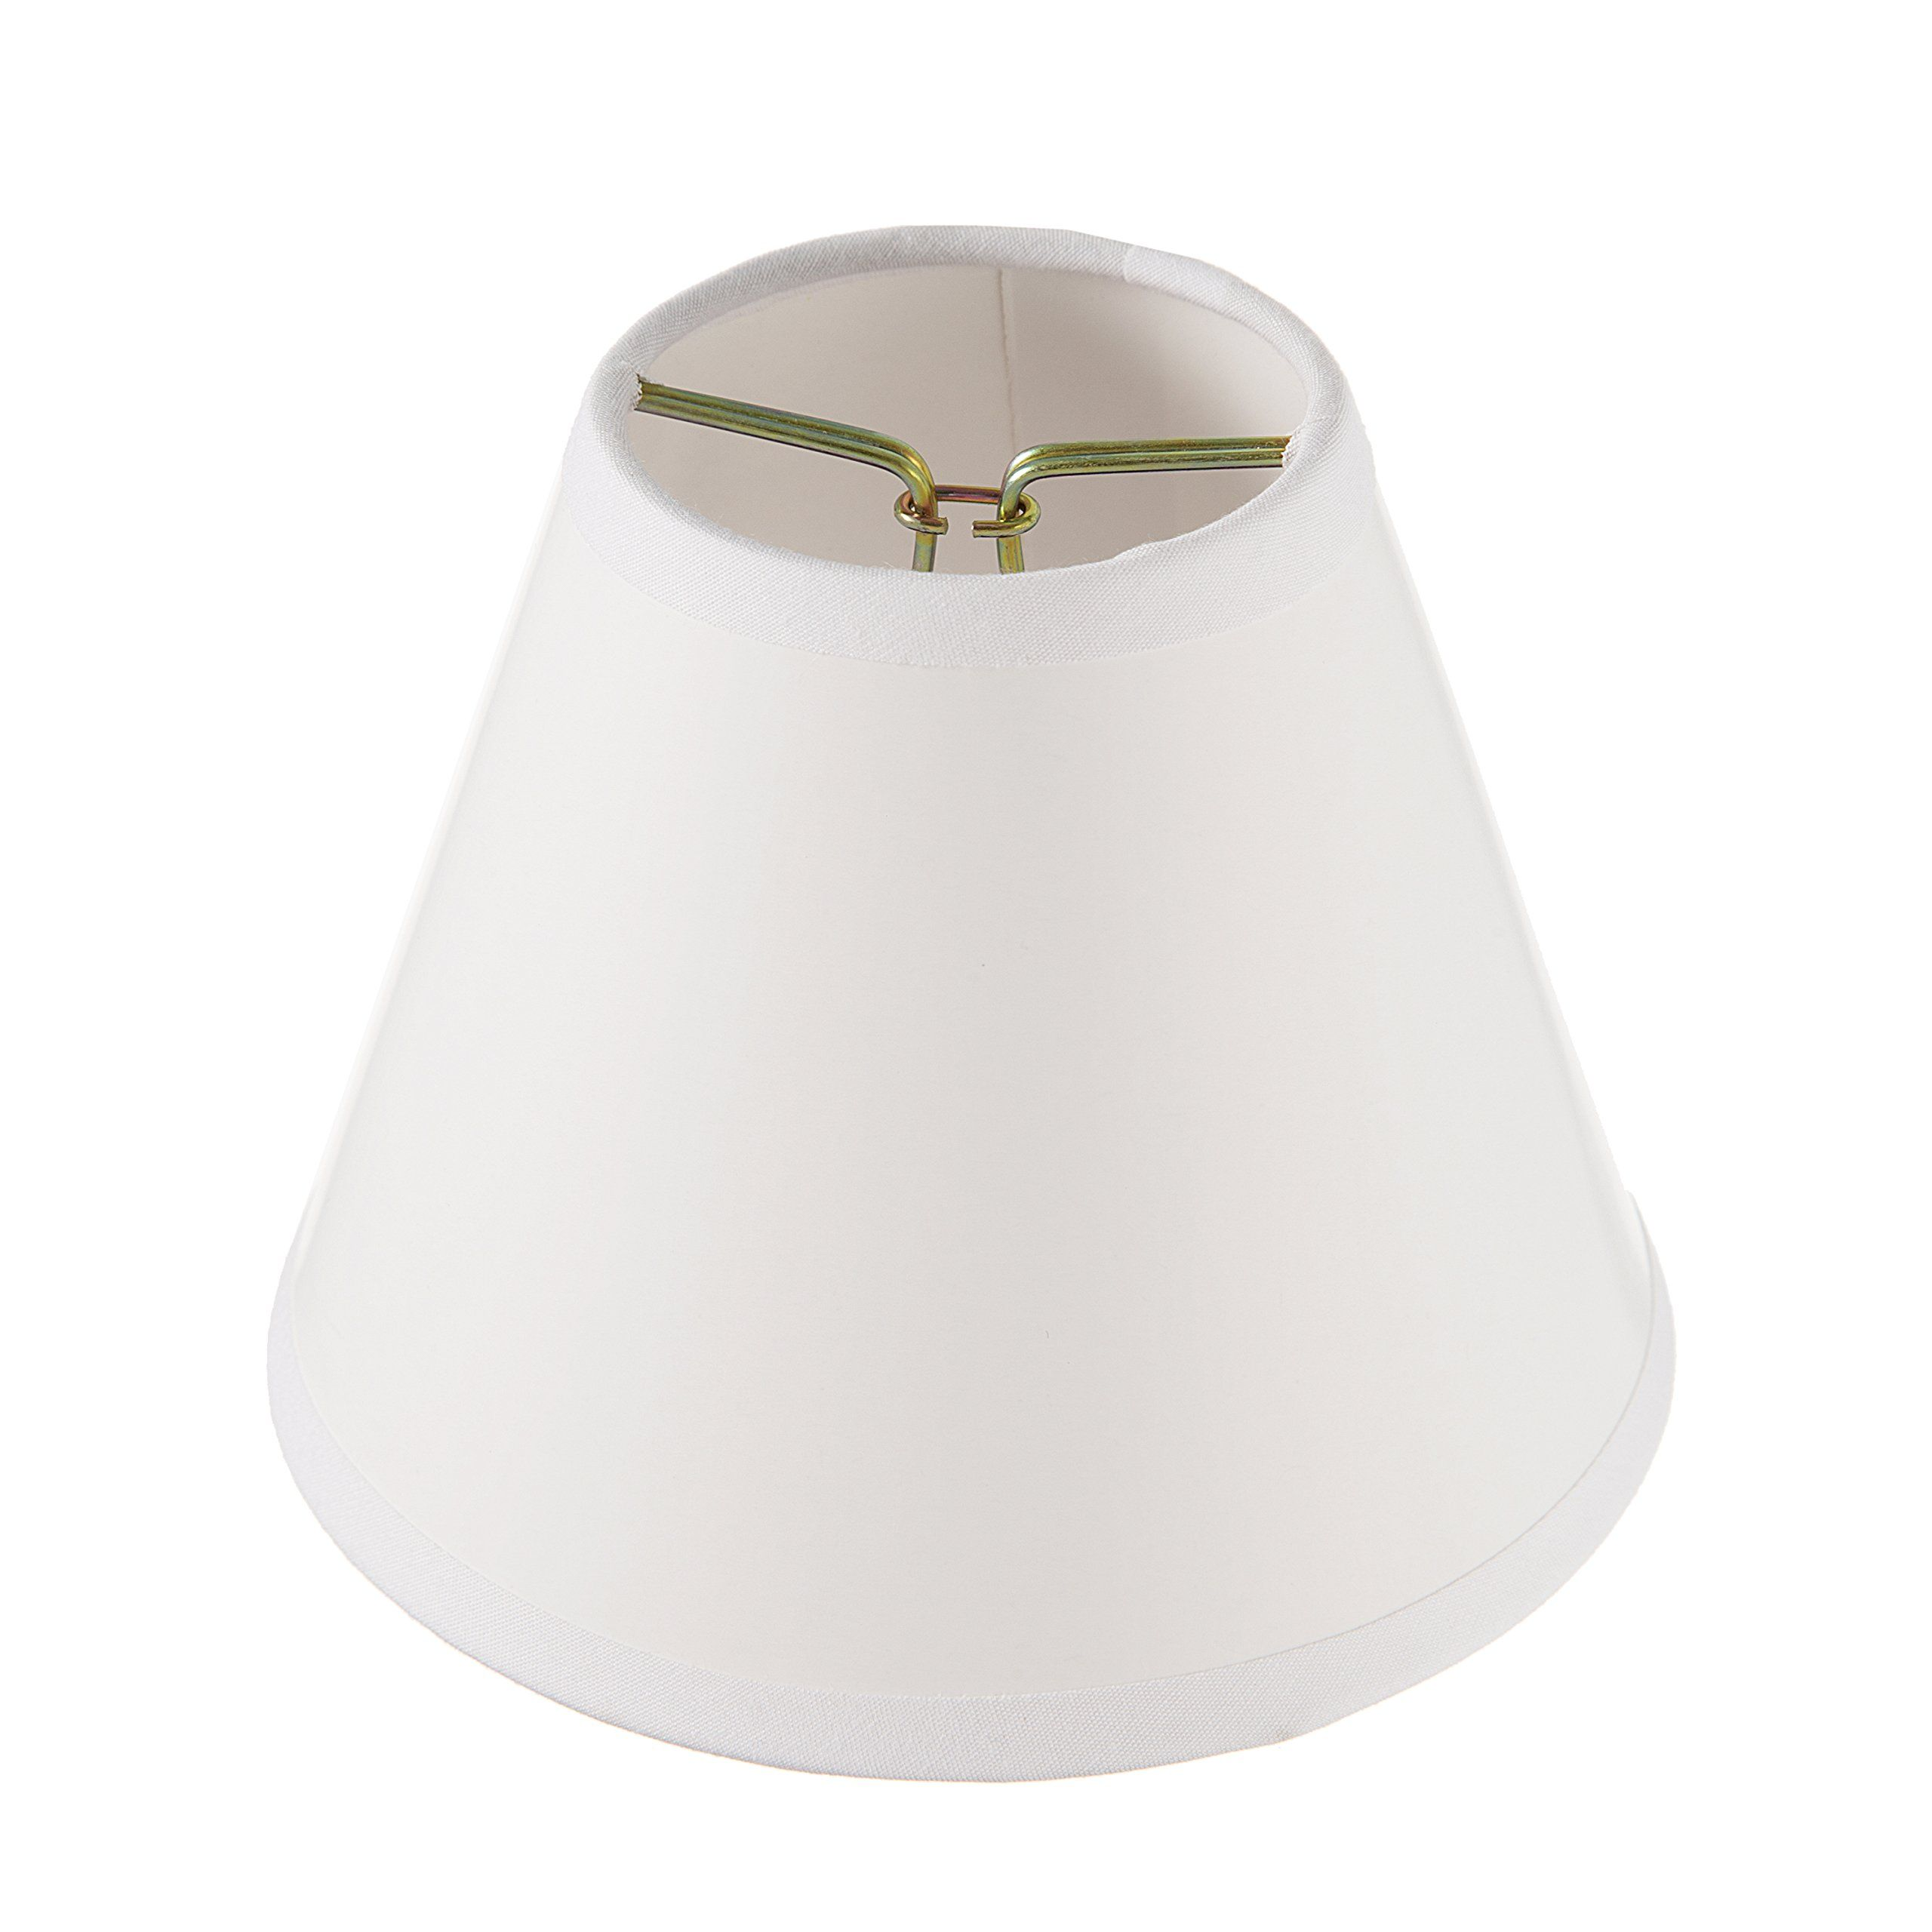 Darice White 4 Inch Lampshade Want Added Information Click The Picture This Is An Affiliate Link Light Accessories Lamp Shade Darice 4 inch lamp shades